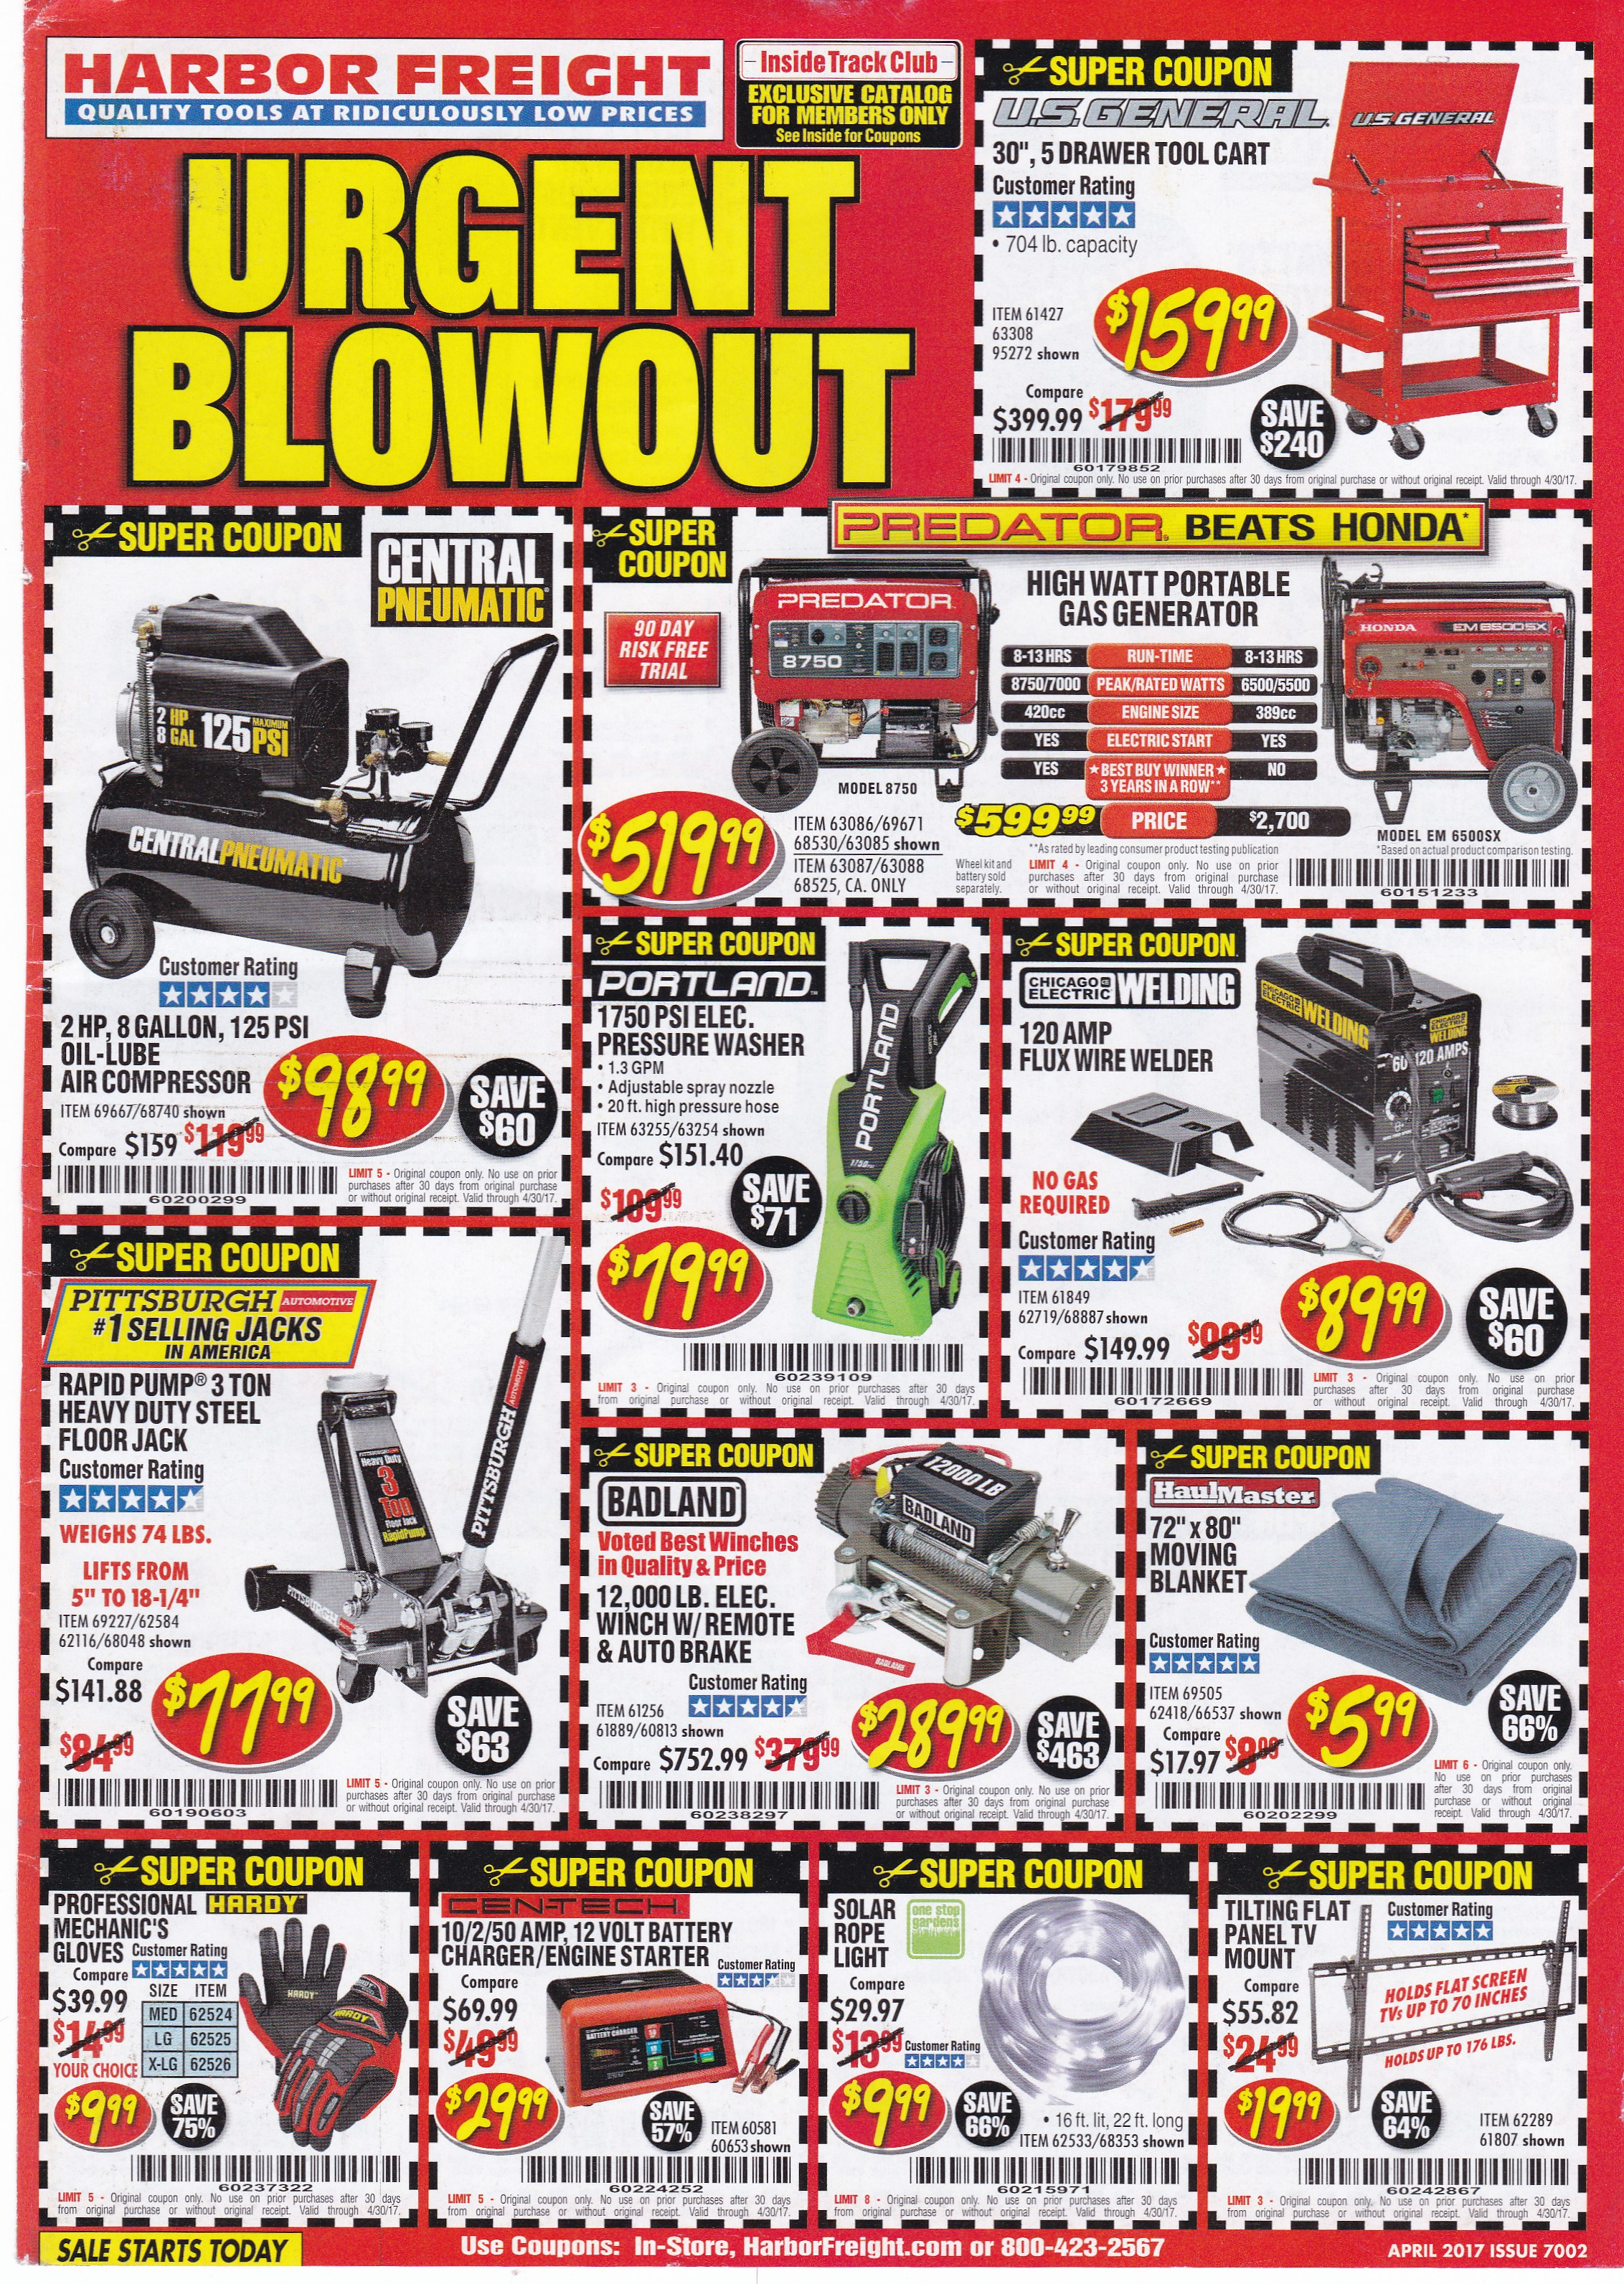 Over 100 Harbor Freight Coupons! Expiring 4/30/17 - Struggleville